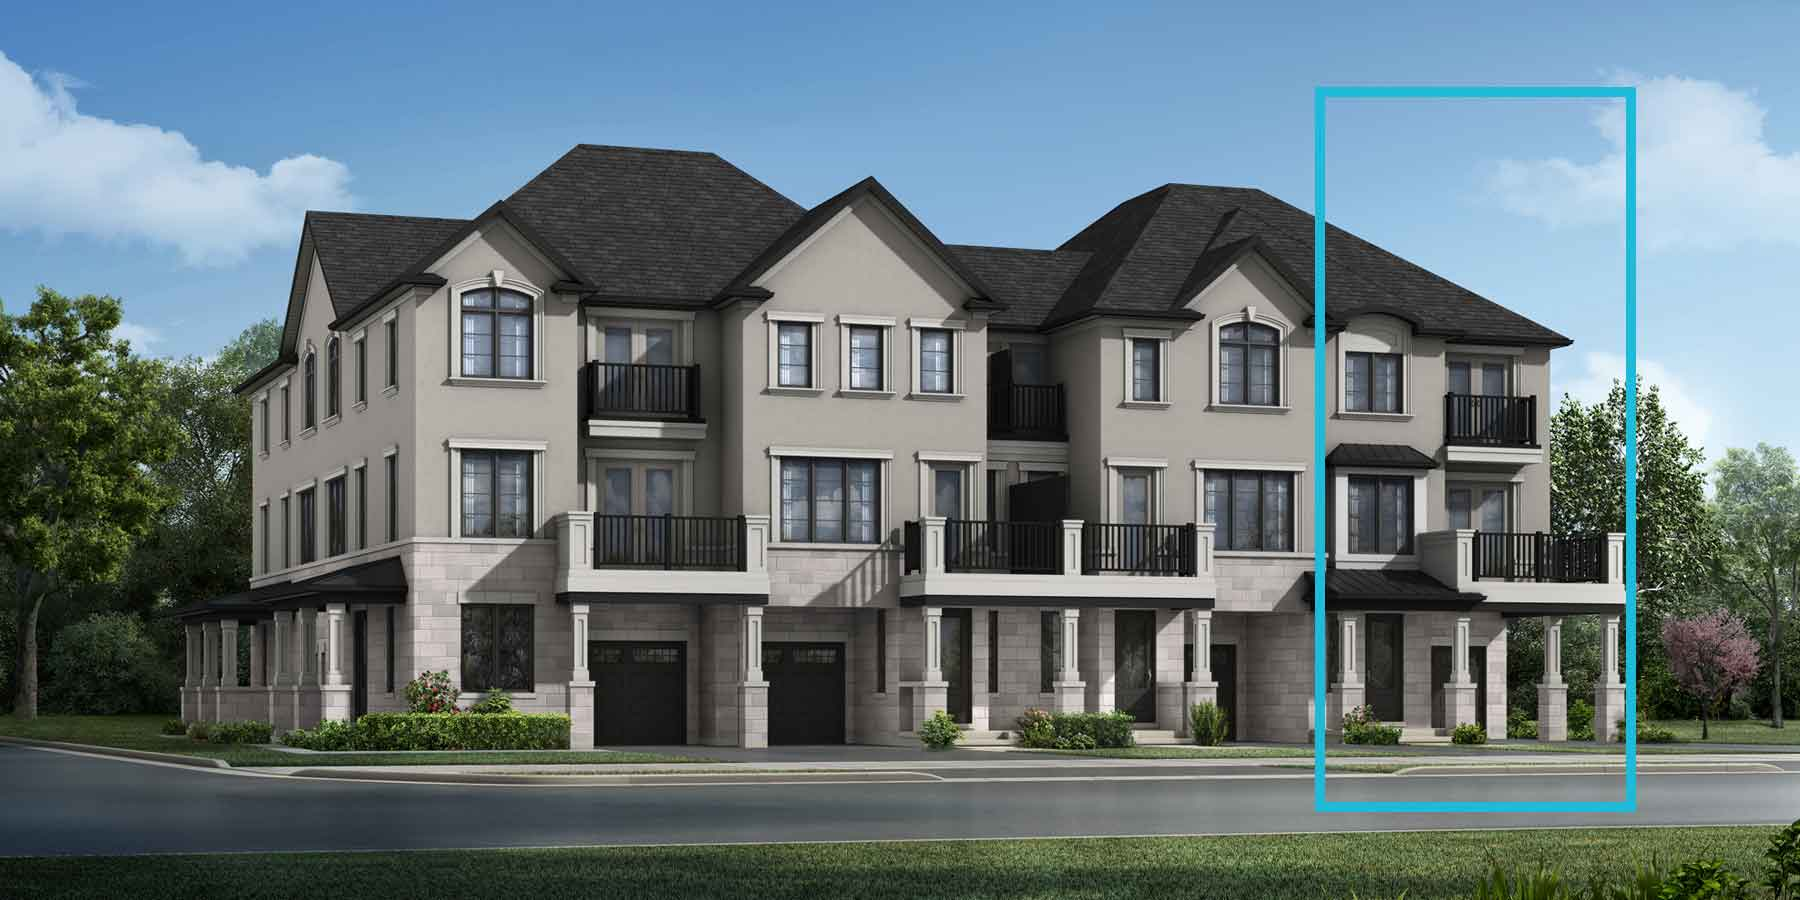 Woodford End Plan TownHomes at The Nine in Mississauga Ontario by Mattamy Homes